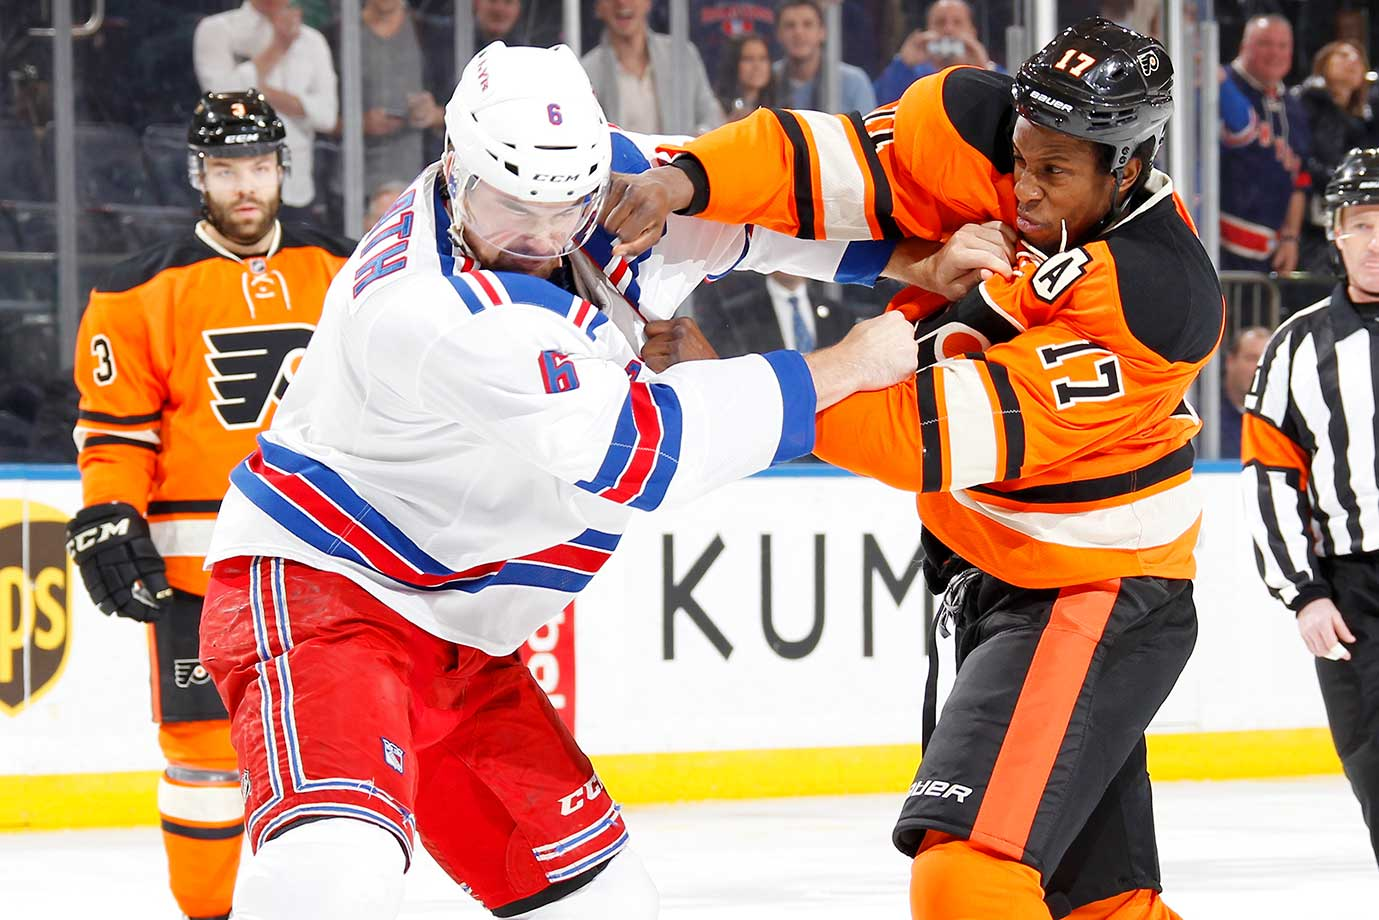 Dylan McIlrath of the New York Rangers and Wayne Simmonds of the Philadelphia Flyers get into a fight at Madison Square Garden.